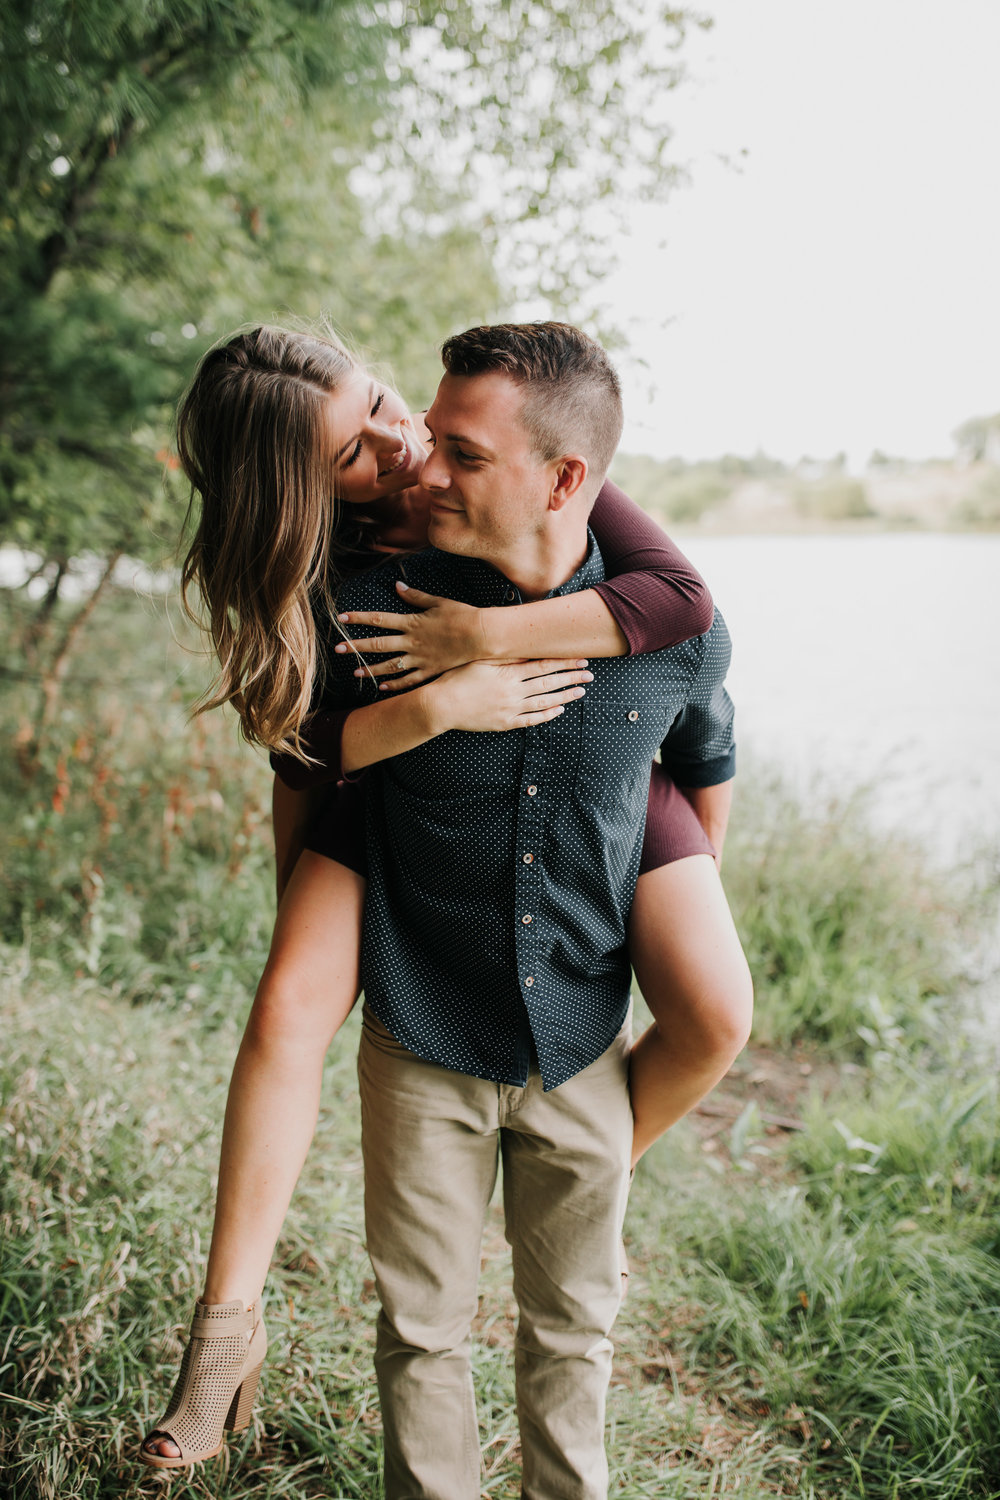 Paige & Nick - Engaged - Nathaniel Jensen Photography - Omaha Nebraska Wedding Photograper - Omaha Nebraska Engagement Session - Chalco Hills Engagement Session-16.jpg